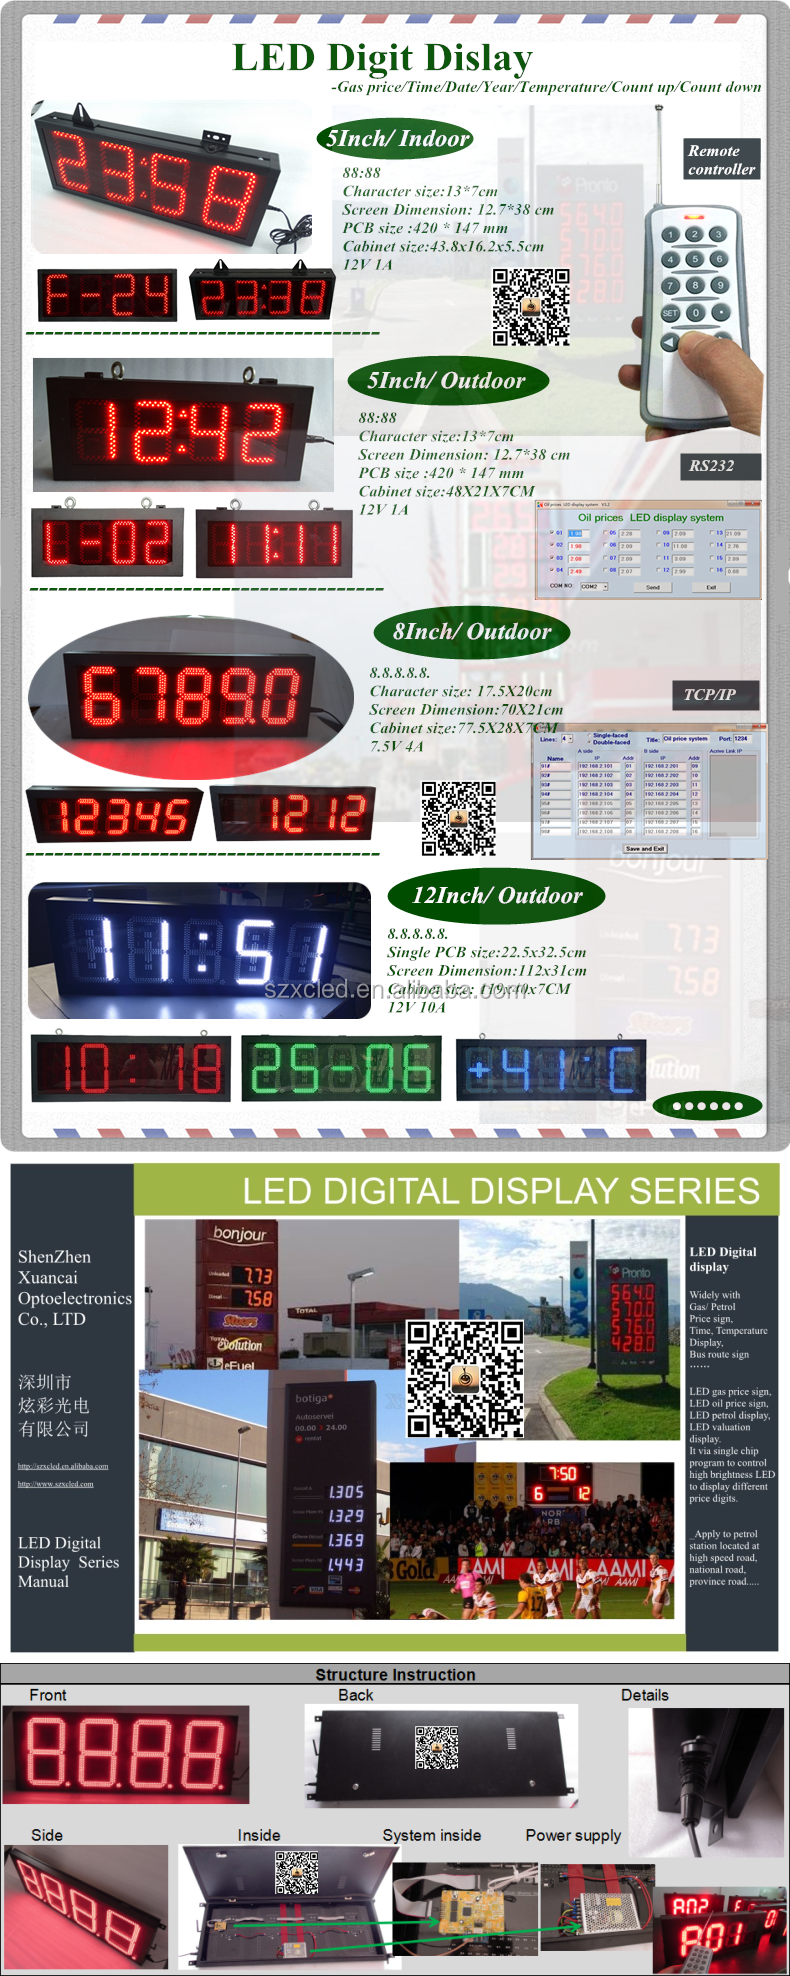 Outdoor IP65 Waterproof Two Sides Faces Red Color 8888 Electronic Digits 16 Inch LED Gas Price Sign Display